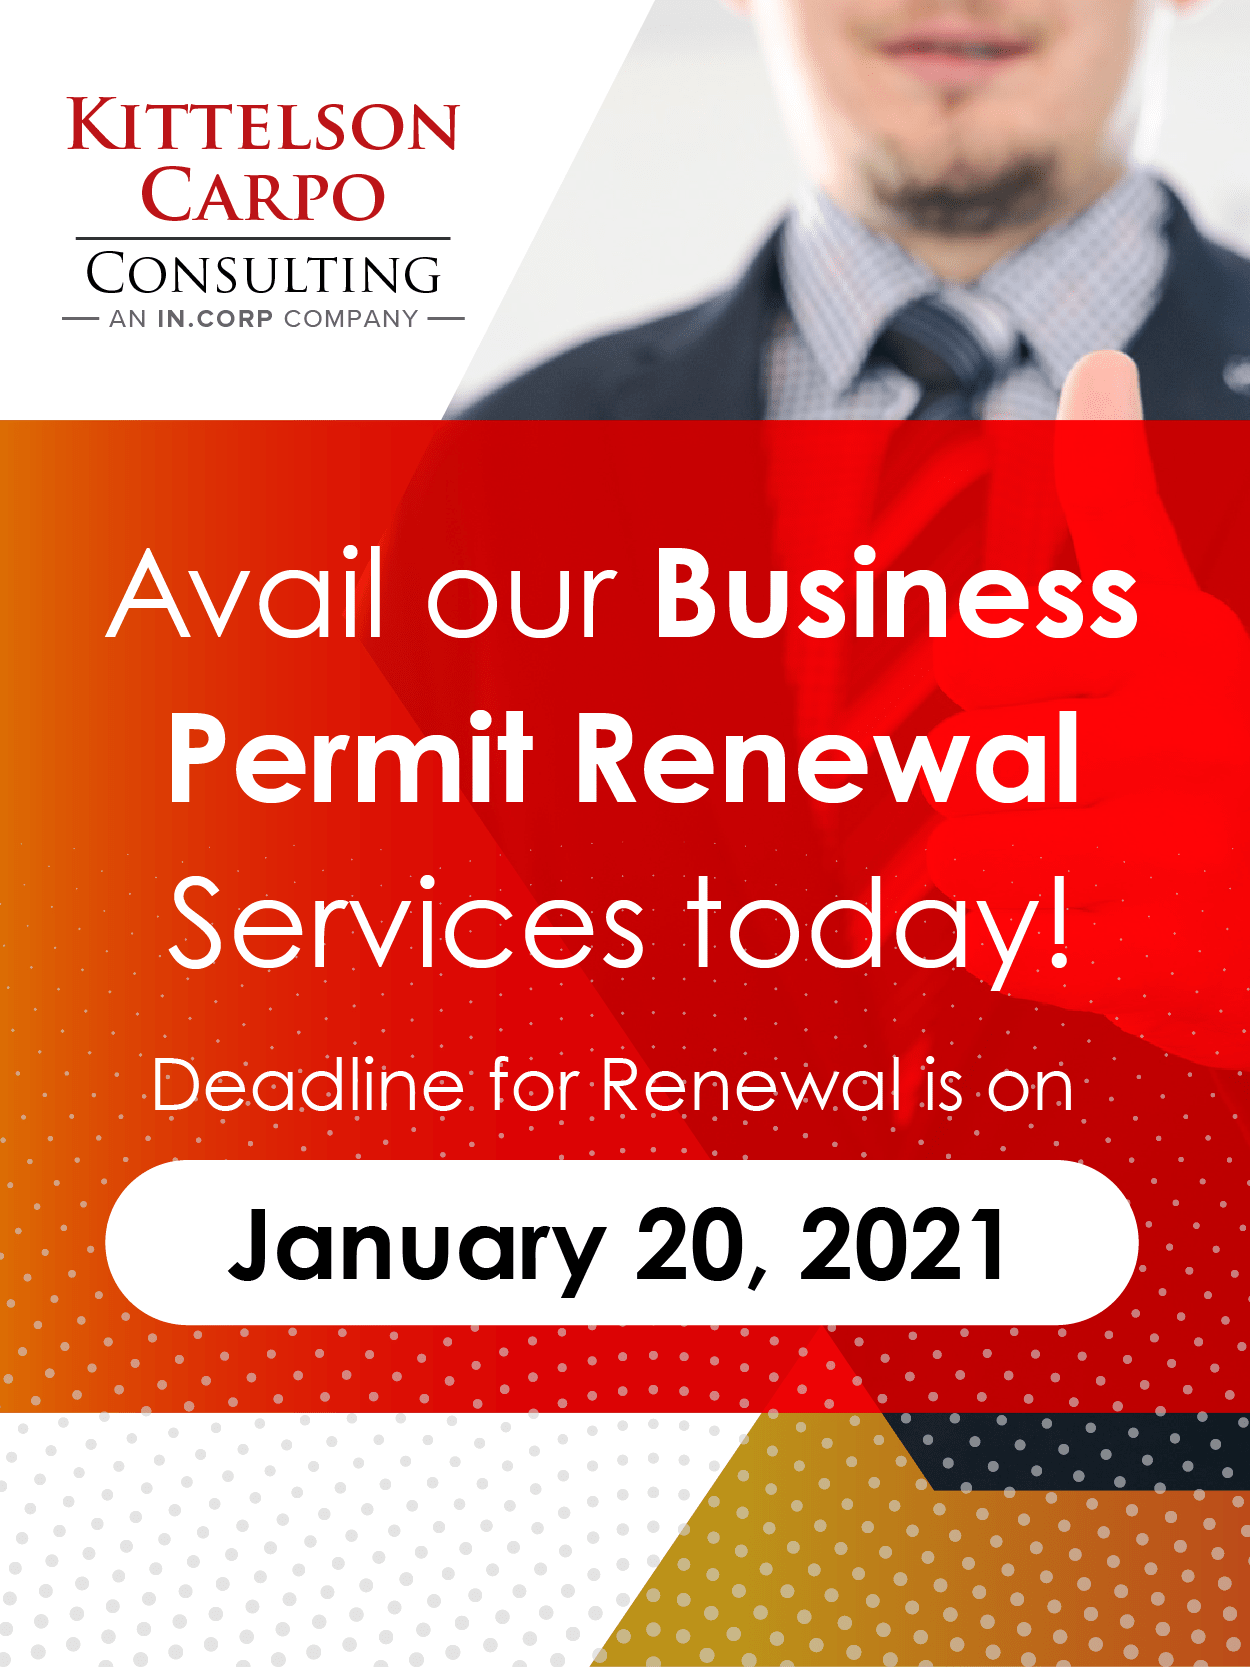 Business Permit Renewal Services